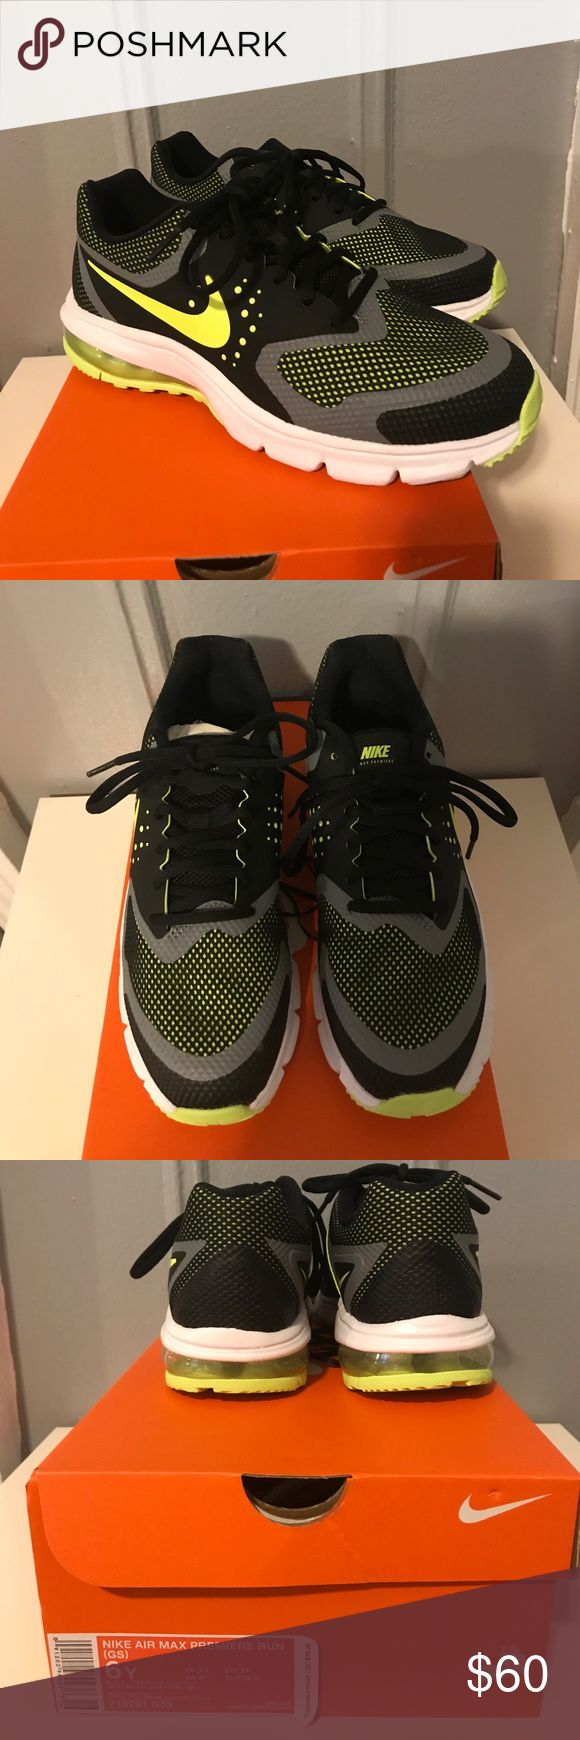 Boys Nike Air Max Premiere Run Sneakers - New!! Boys Nike Air Max Premiere Run Sneakers - Brand New! Size 6Y.  Also fits women's size 7.5/8. Nike Shoes Sneakers